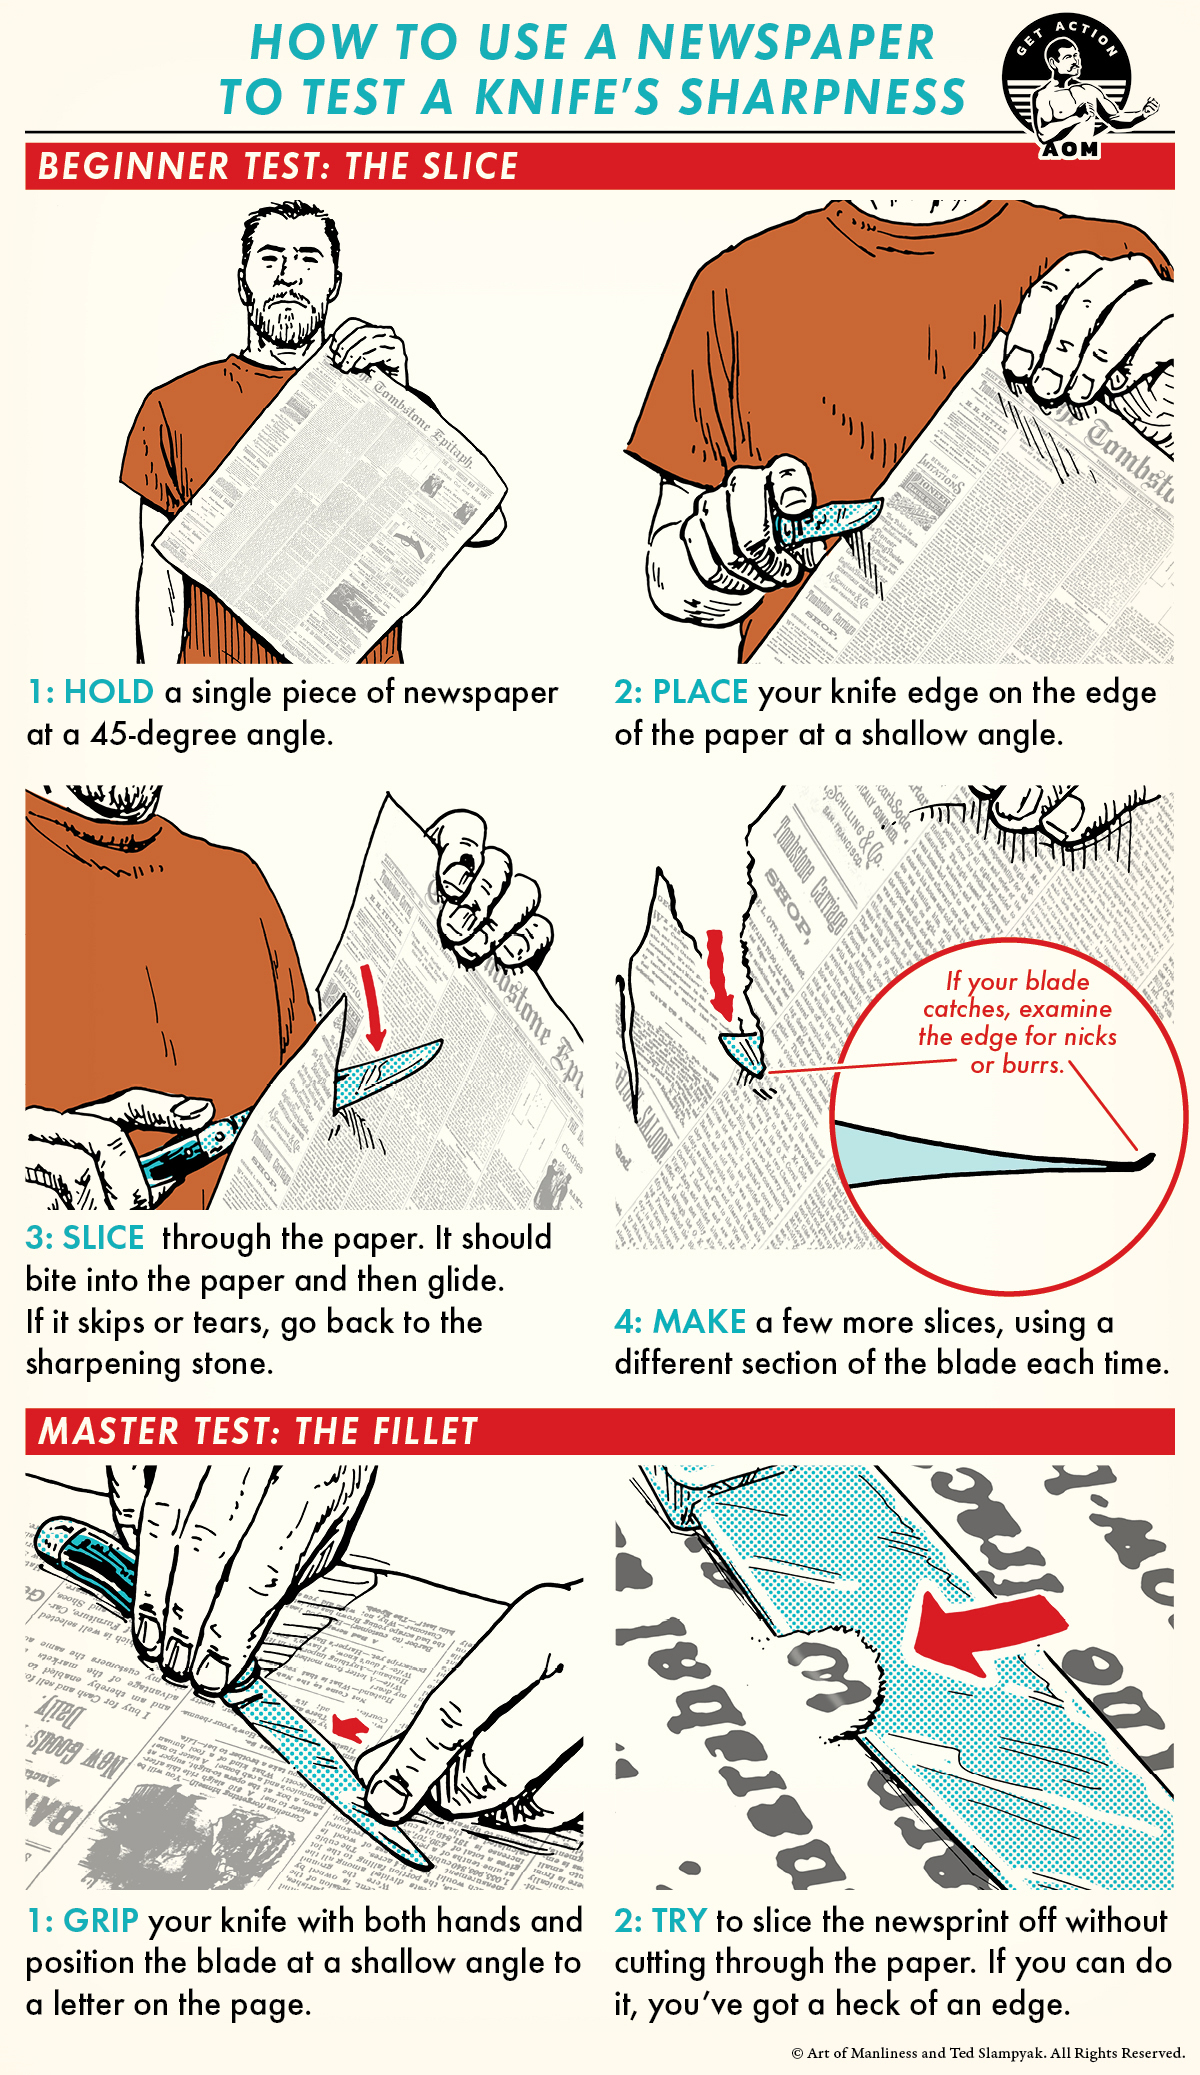 Steps explained on using a newspaper for a knife's sharpness test.